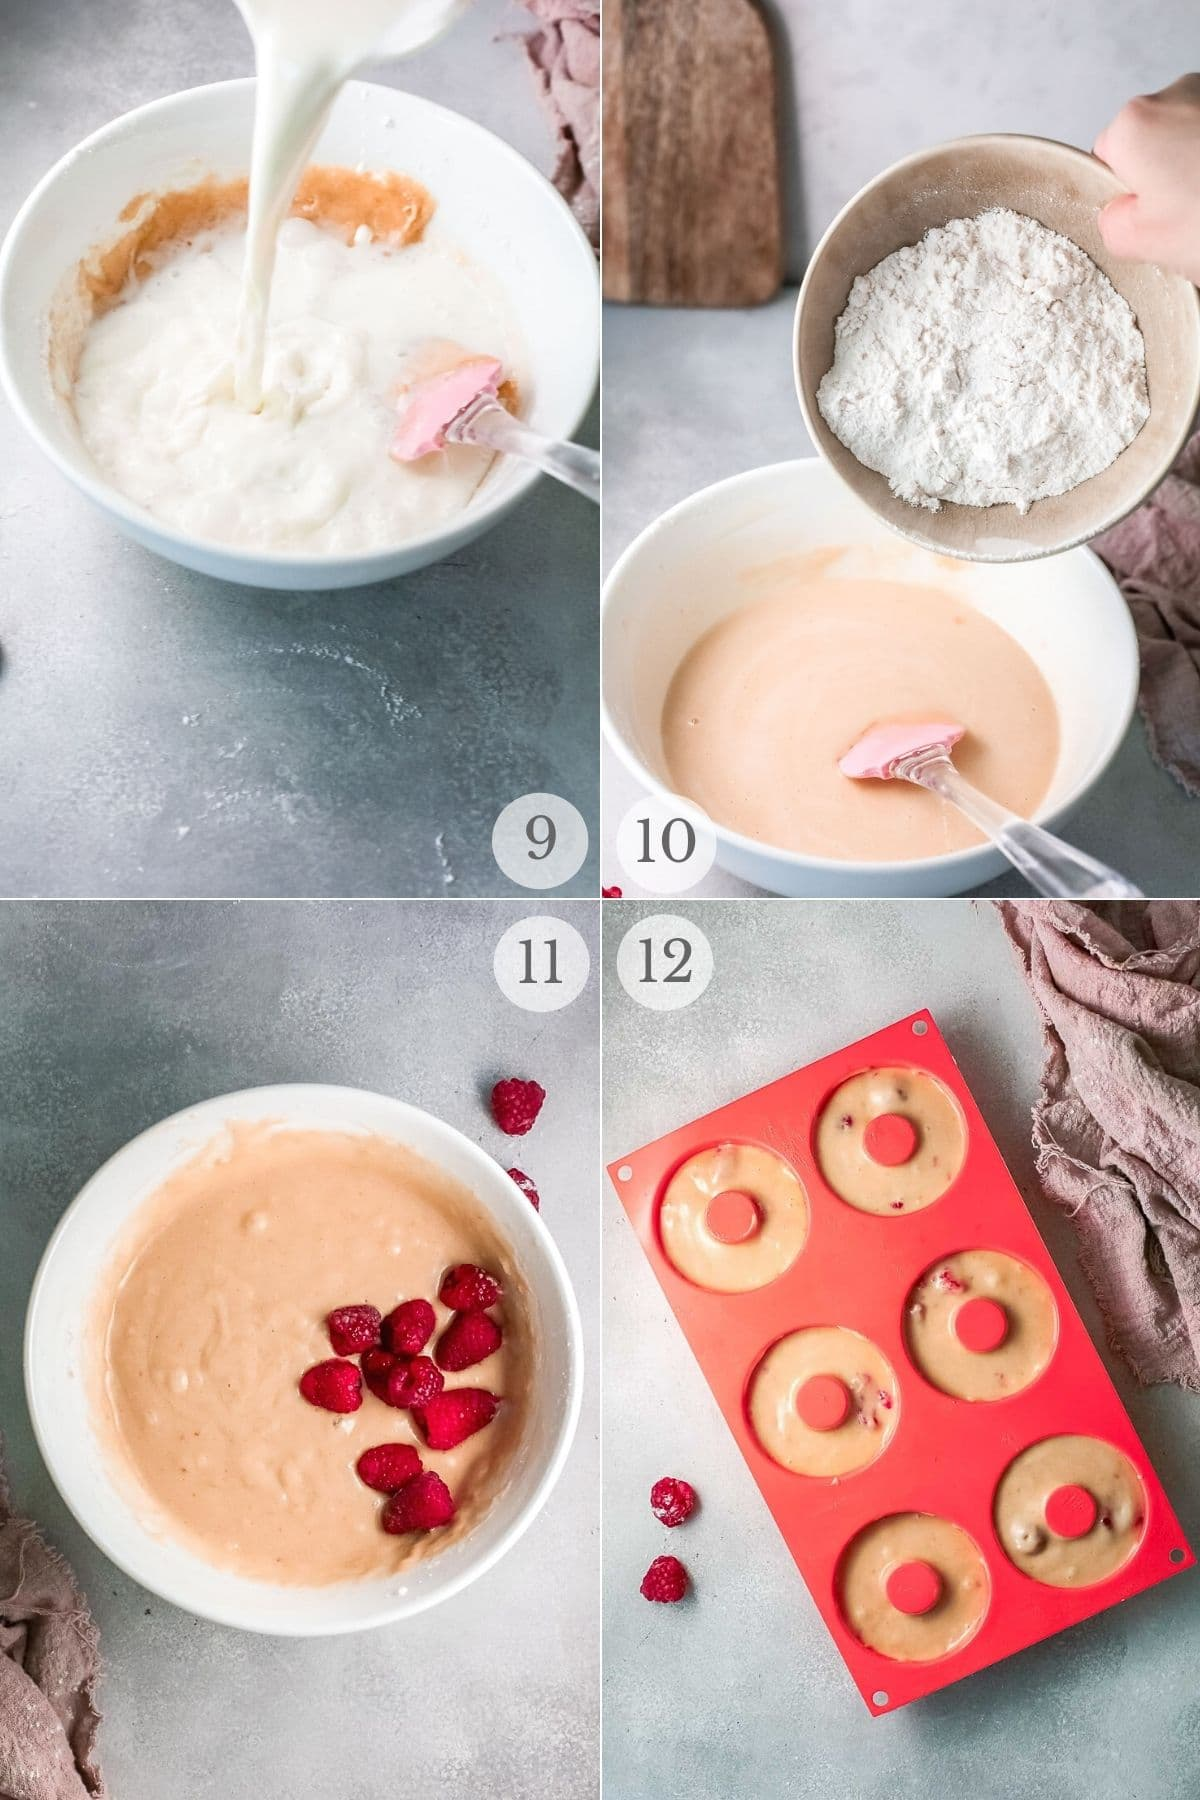 baked donuts recipe steps 9-12